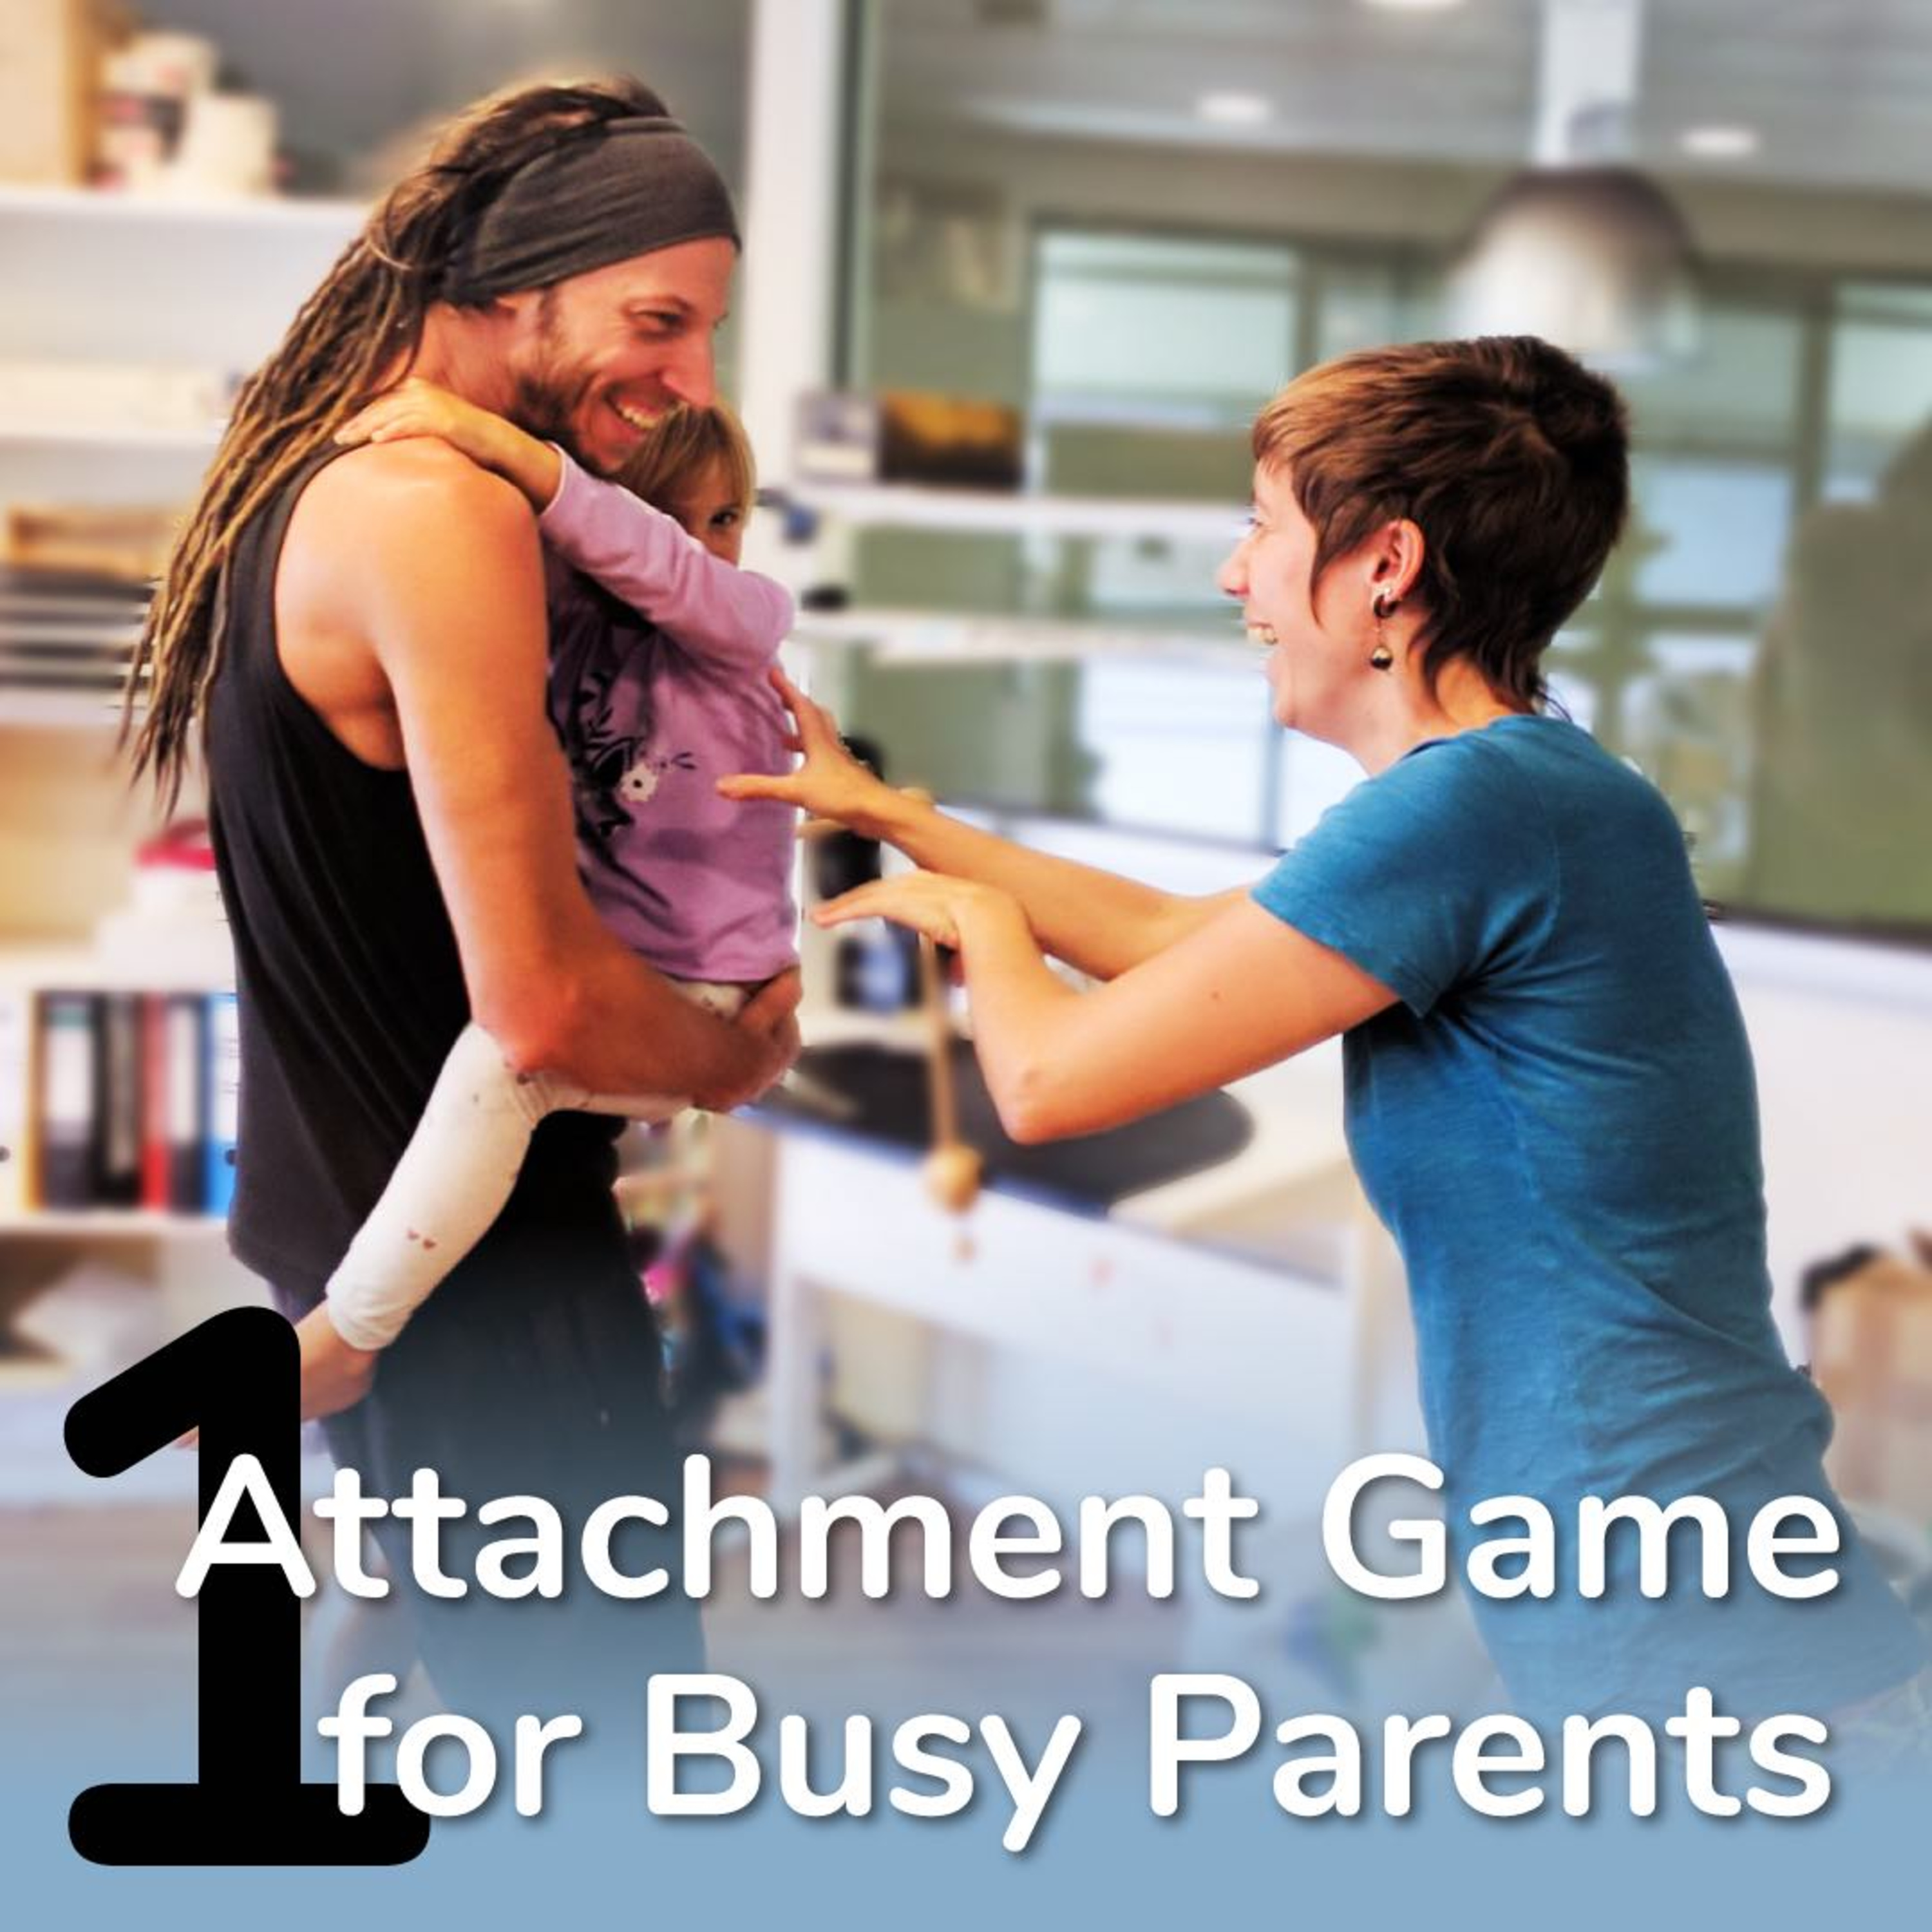 She's Mine: An Attachment Game For Busy Parents